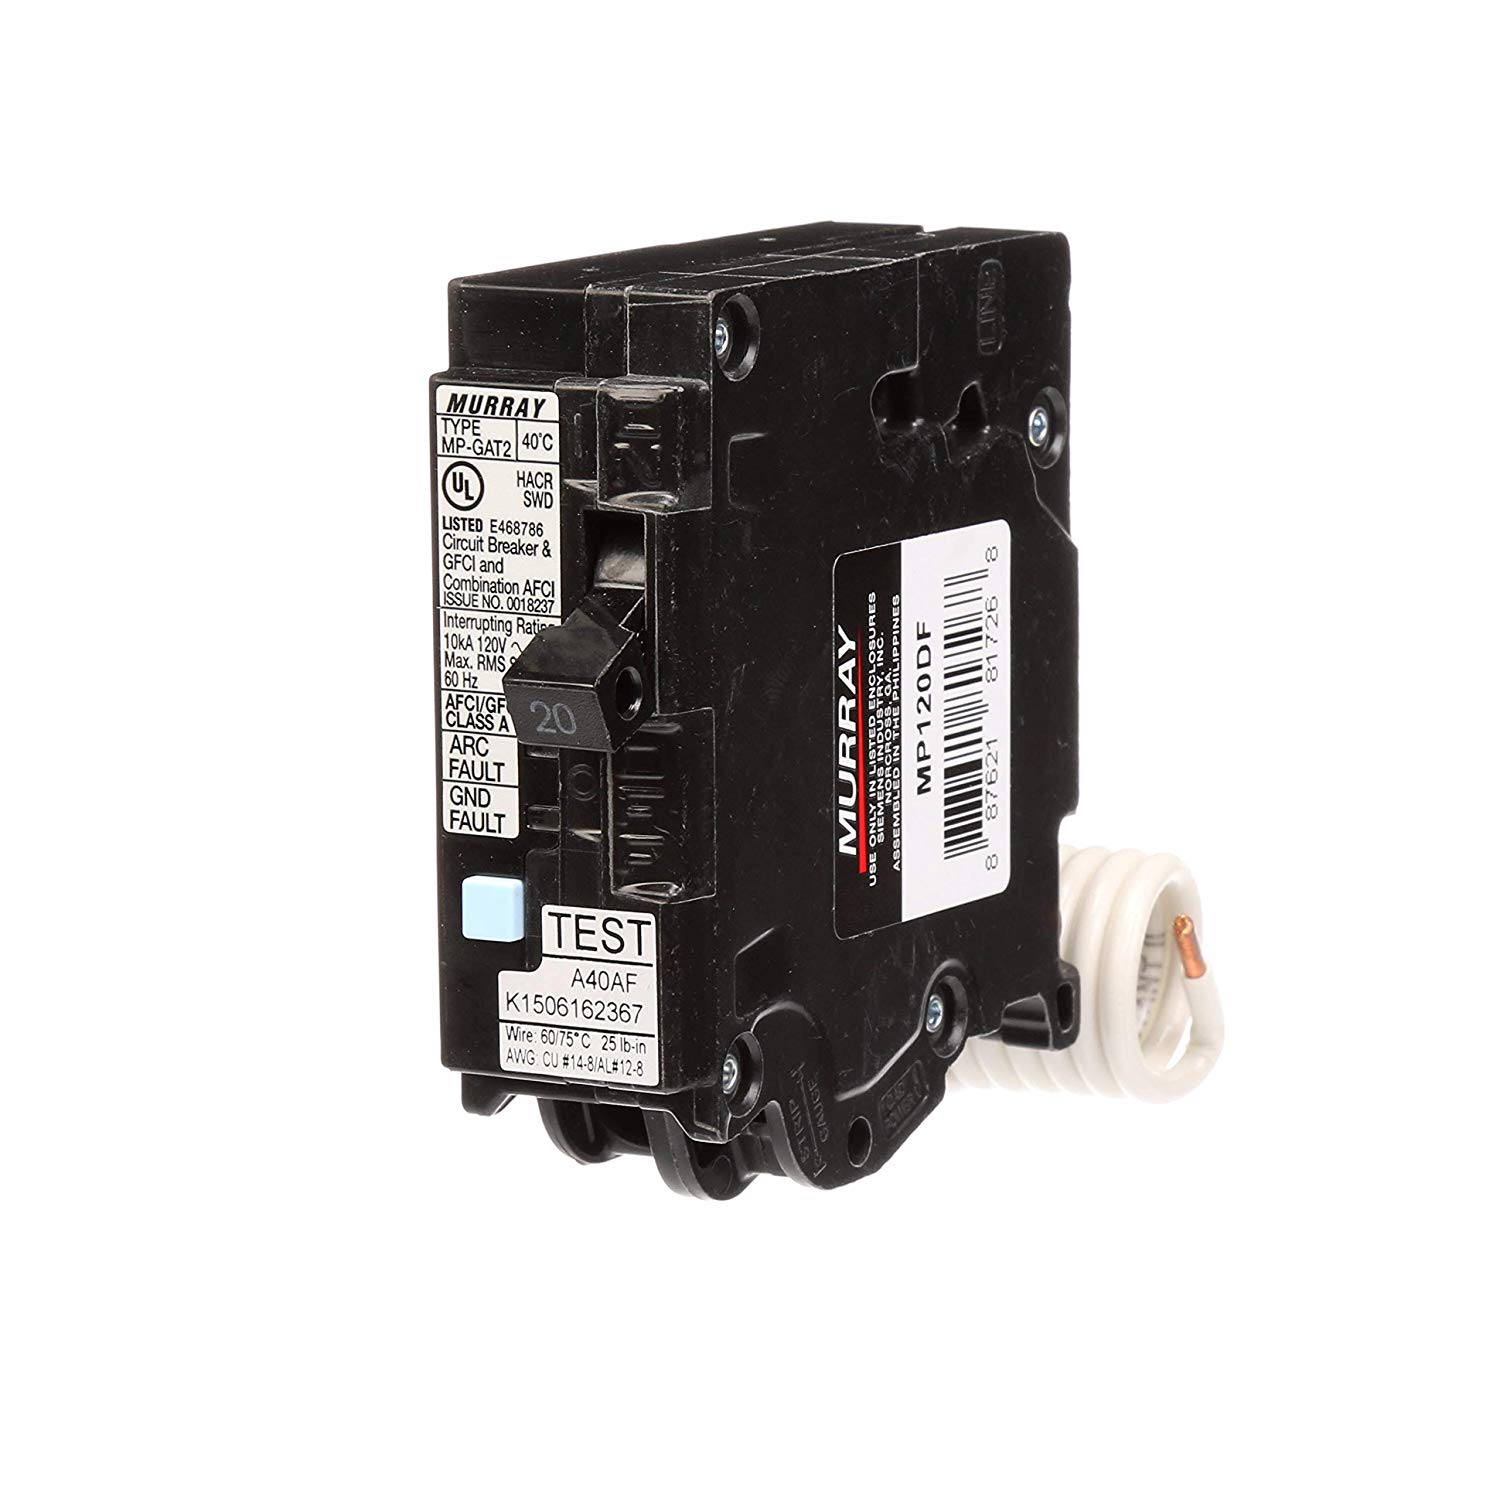 Murray Mp120df 20 Gfci Dual Function Circuit Breaker  Plug On Load Cent